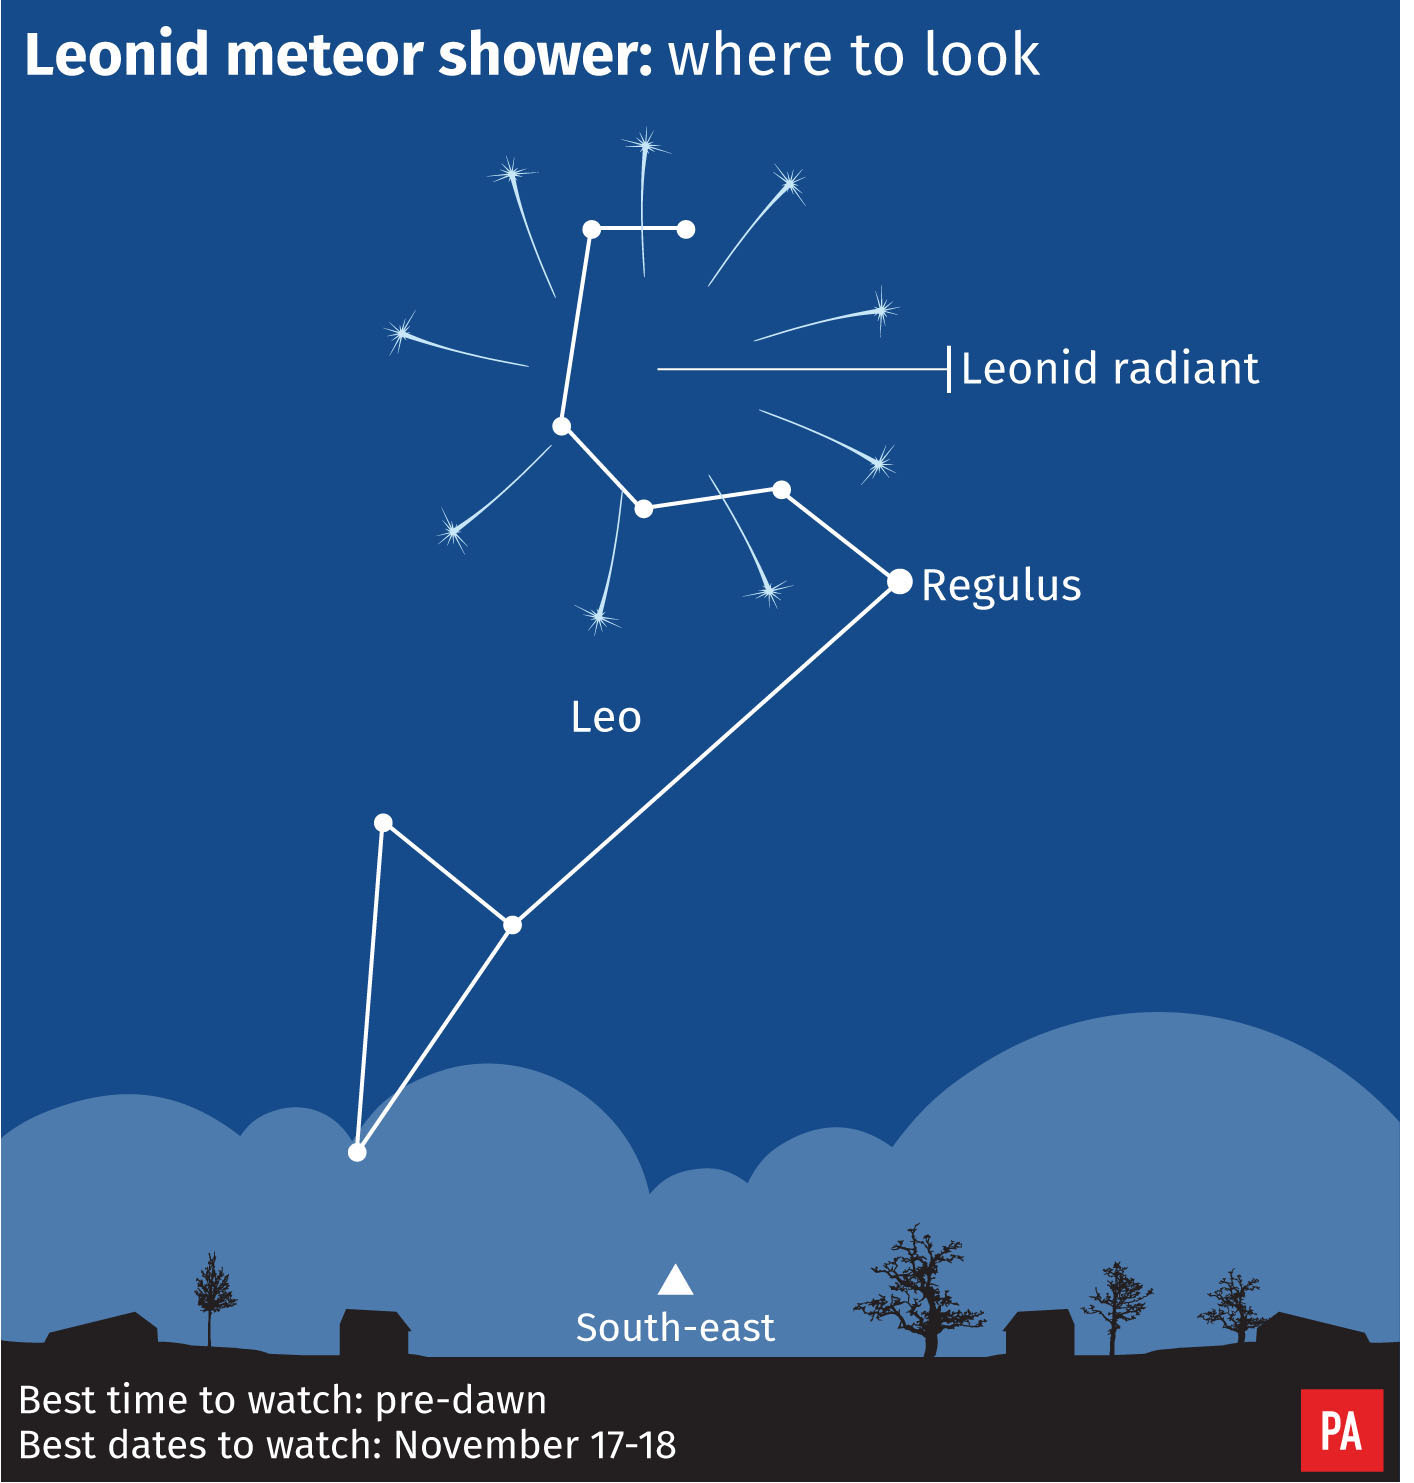 Astronomers poised for Leonid meteor shower in skies above Britain